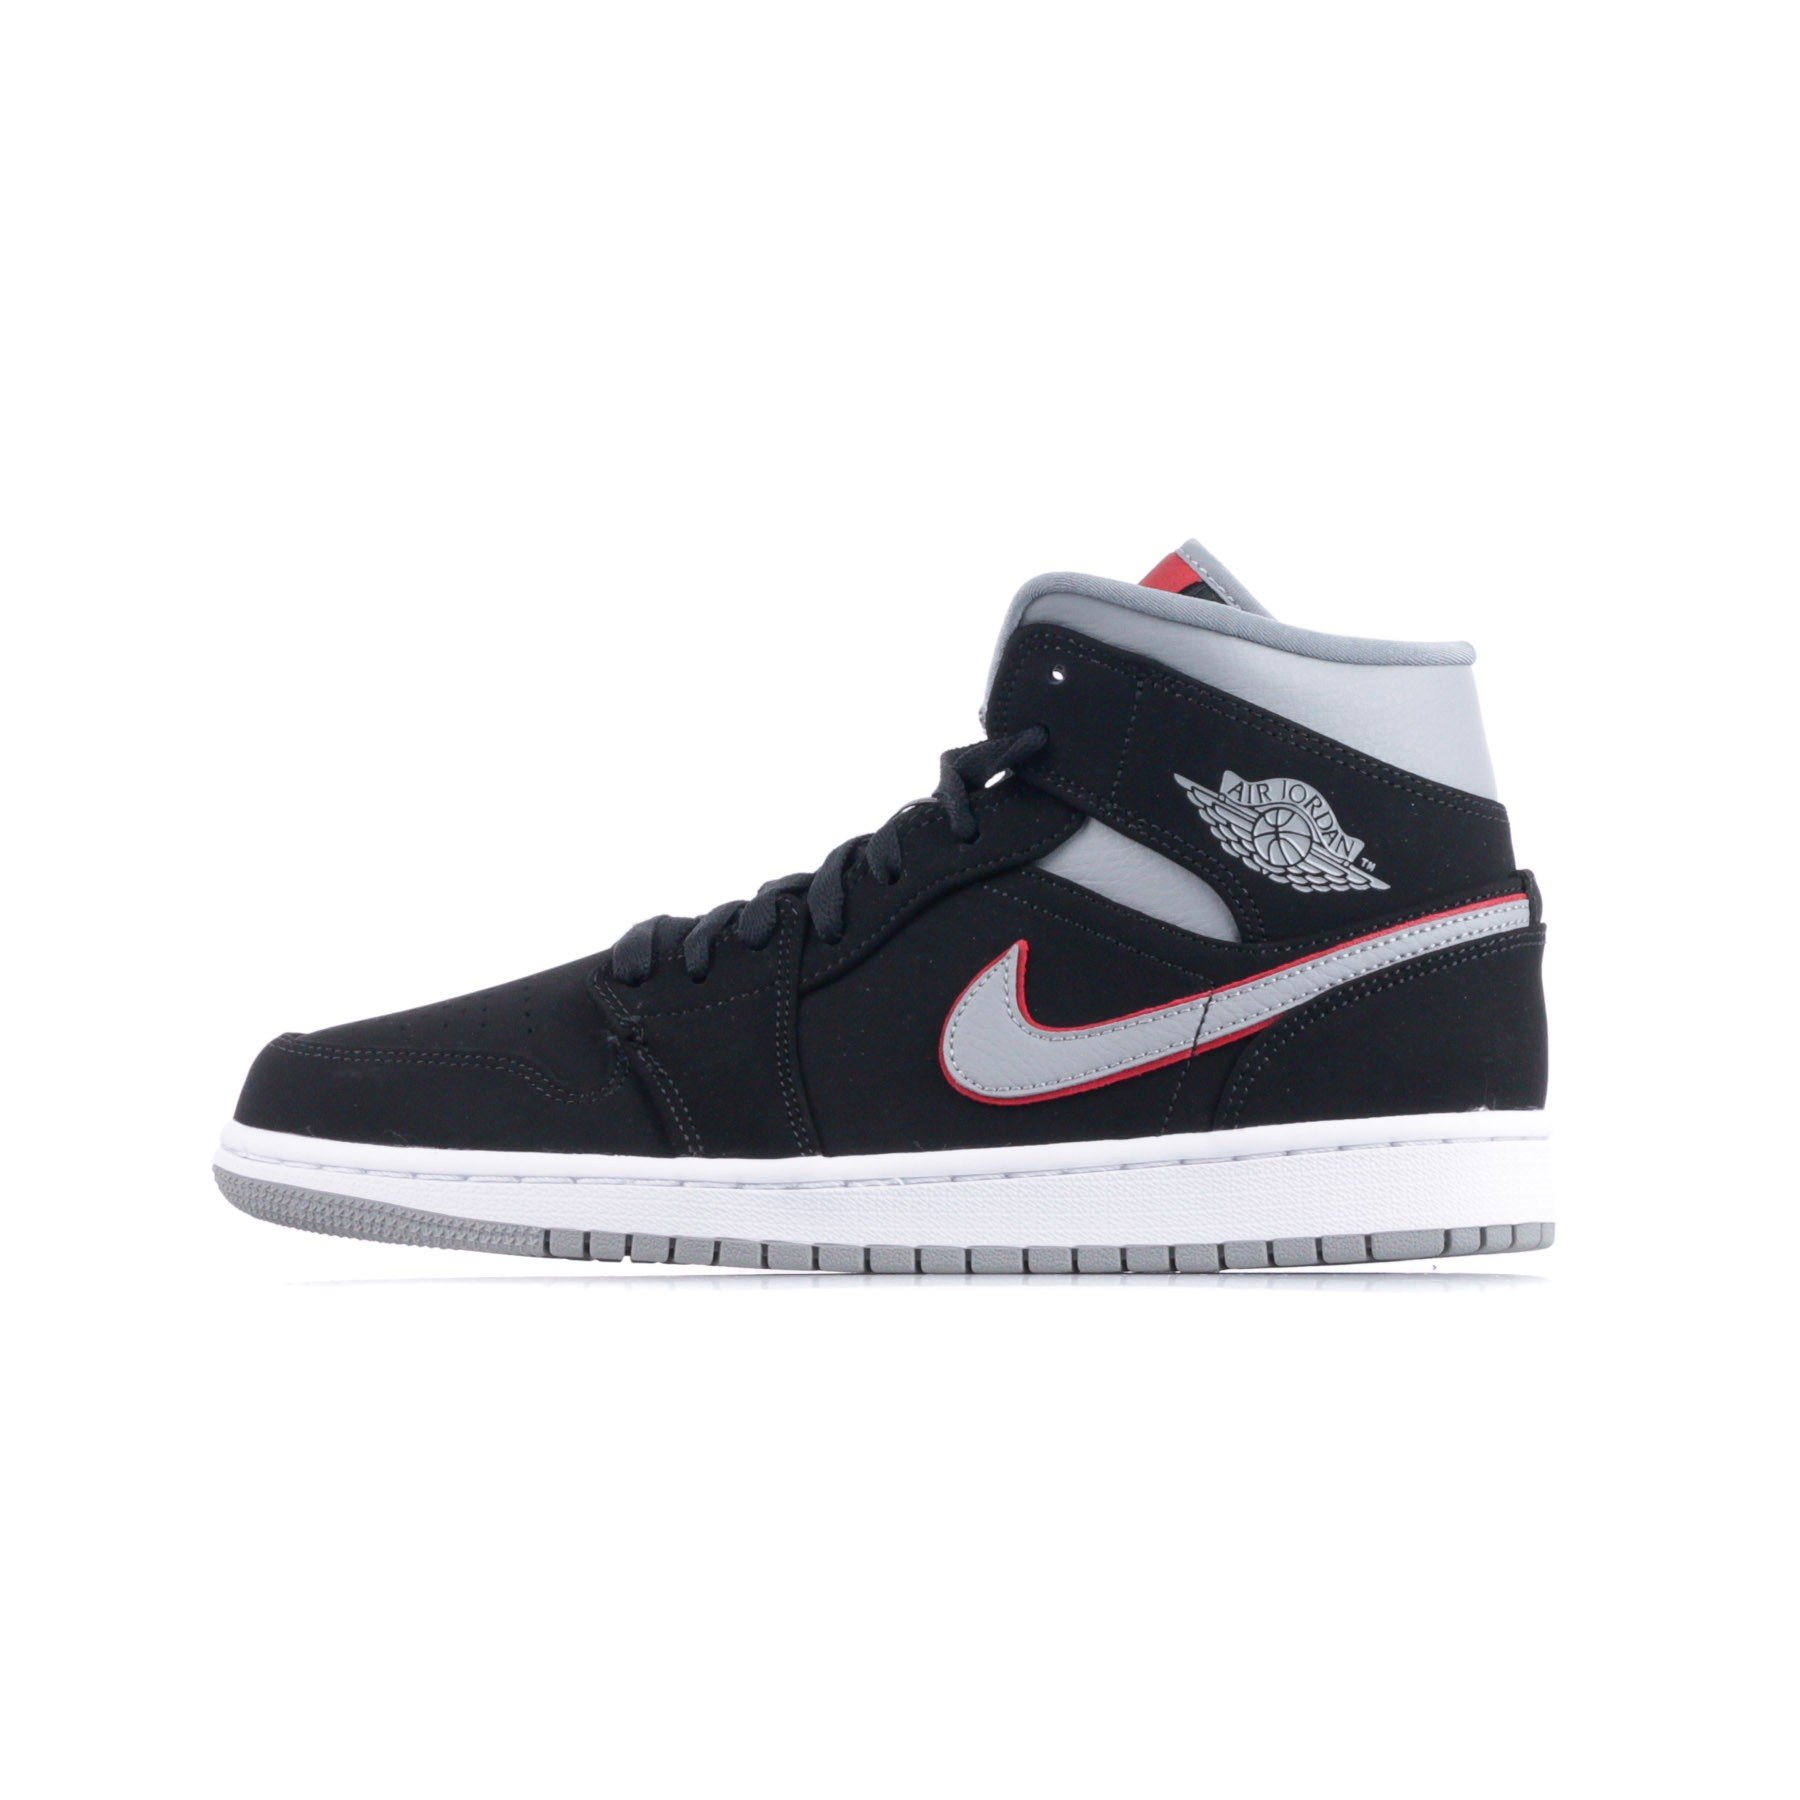 finest selection 4ca68 784a0 SCARPA ALTA AIR JORDAN 1 MID BLACK PARTICLE GREY WHITE GYM RED